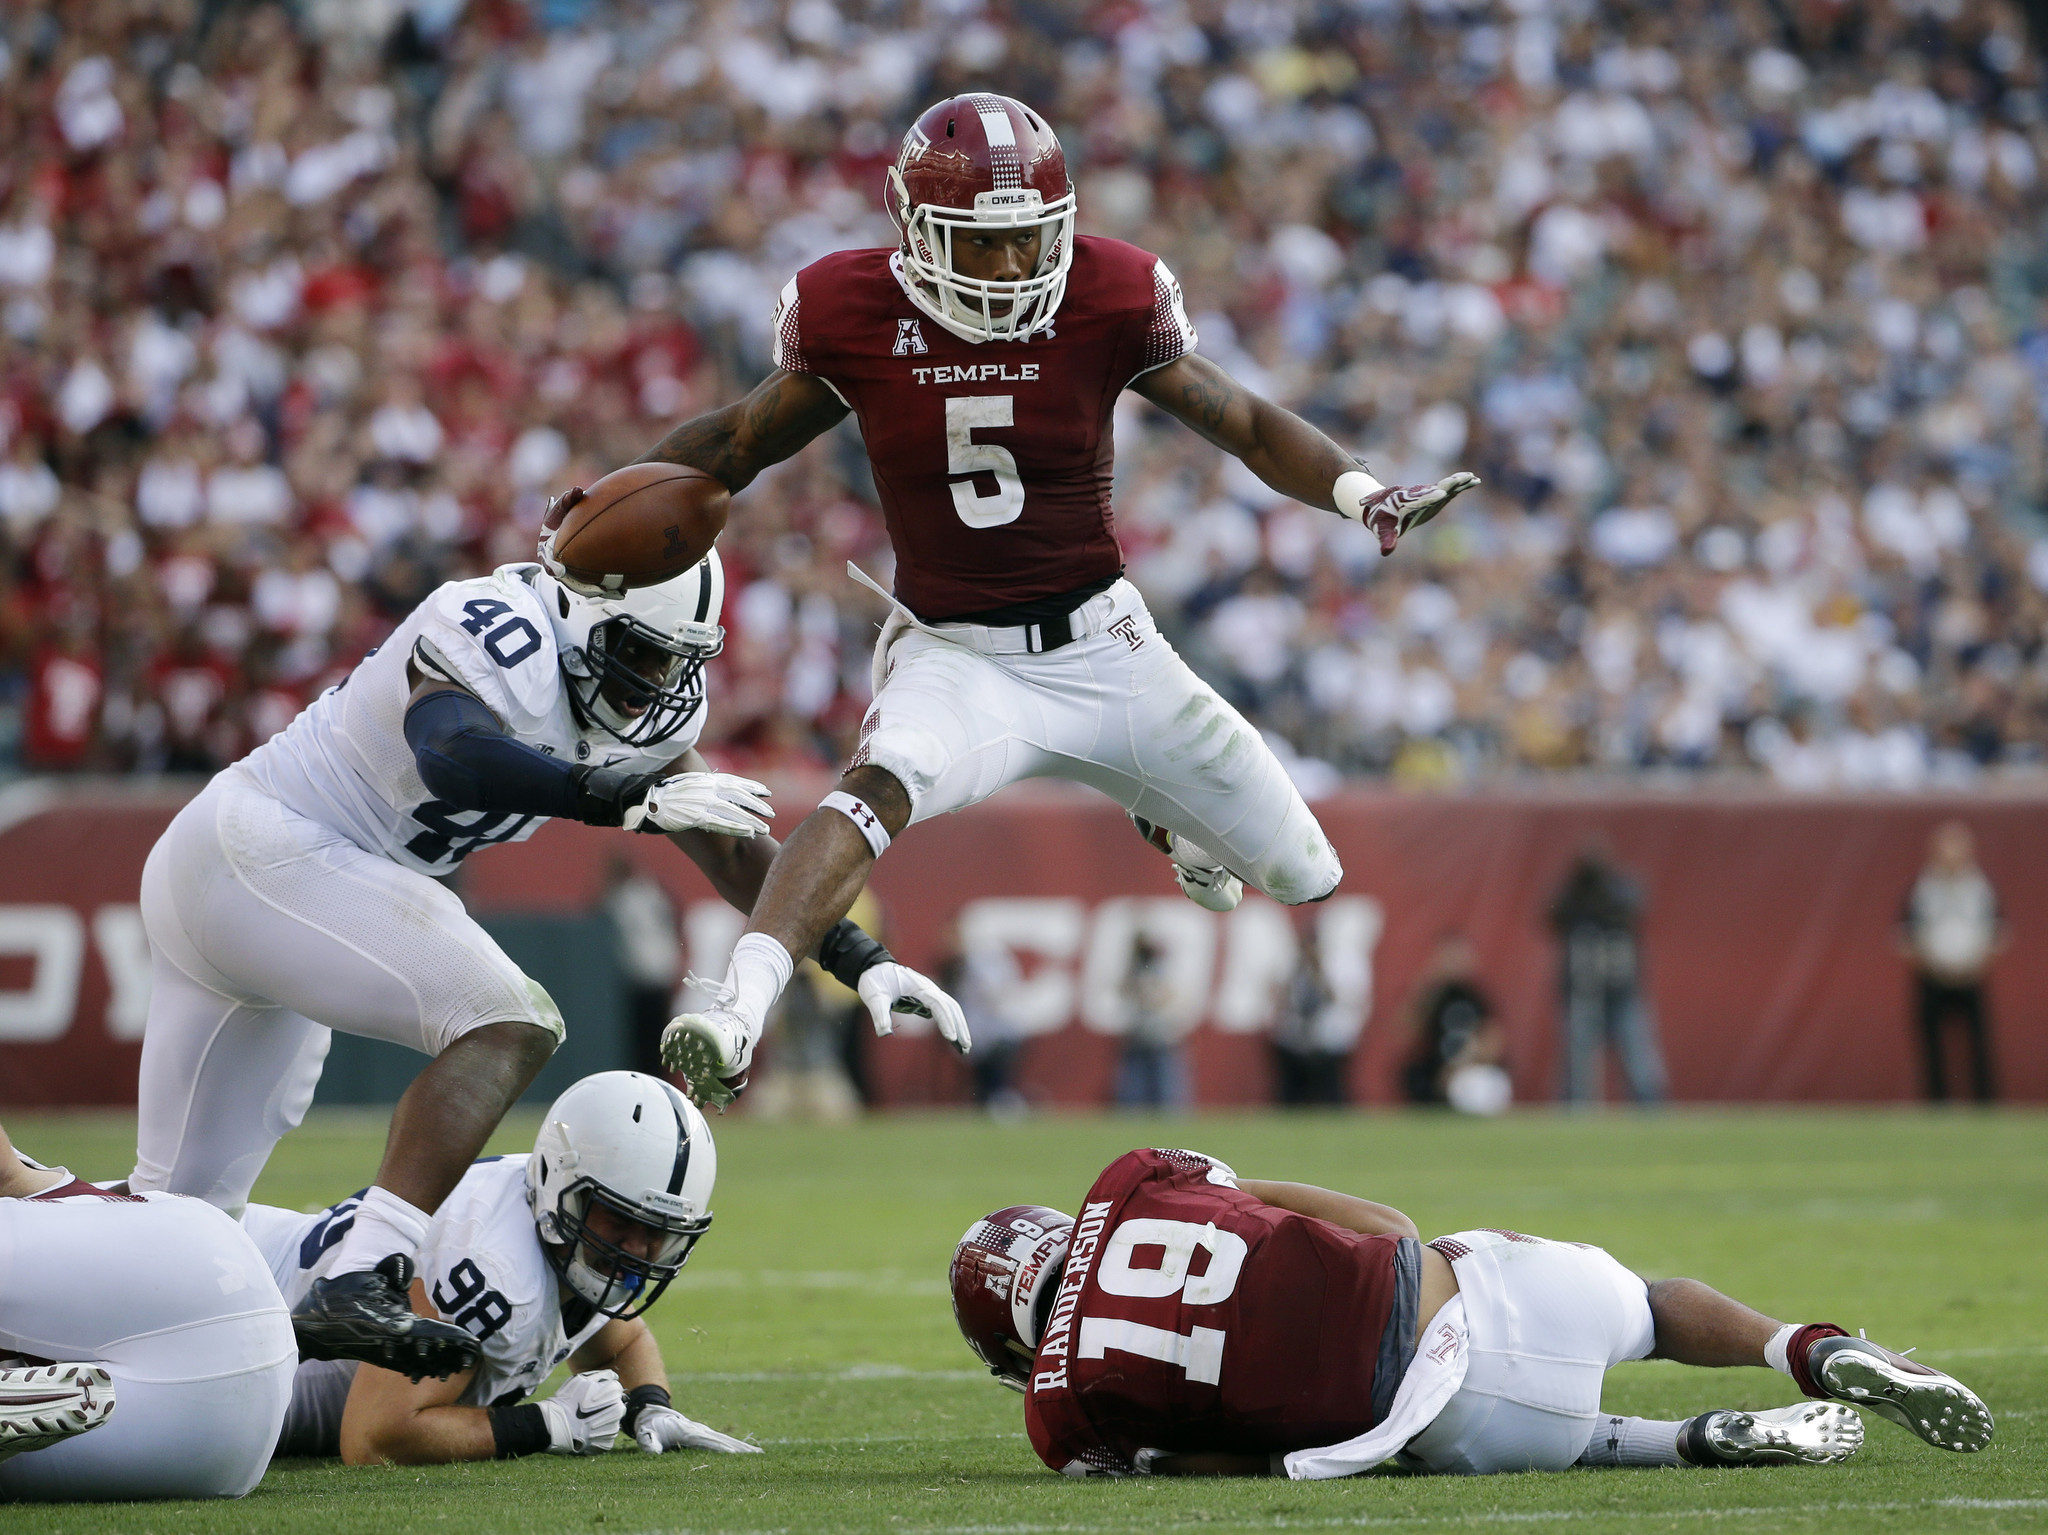 Os-college-football-countdown-no-40-temple-20160716